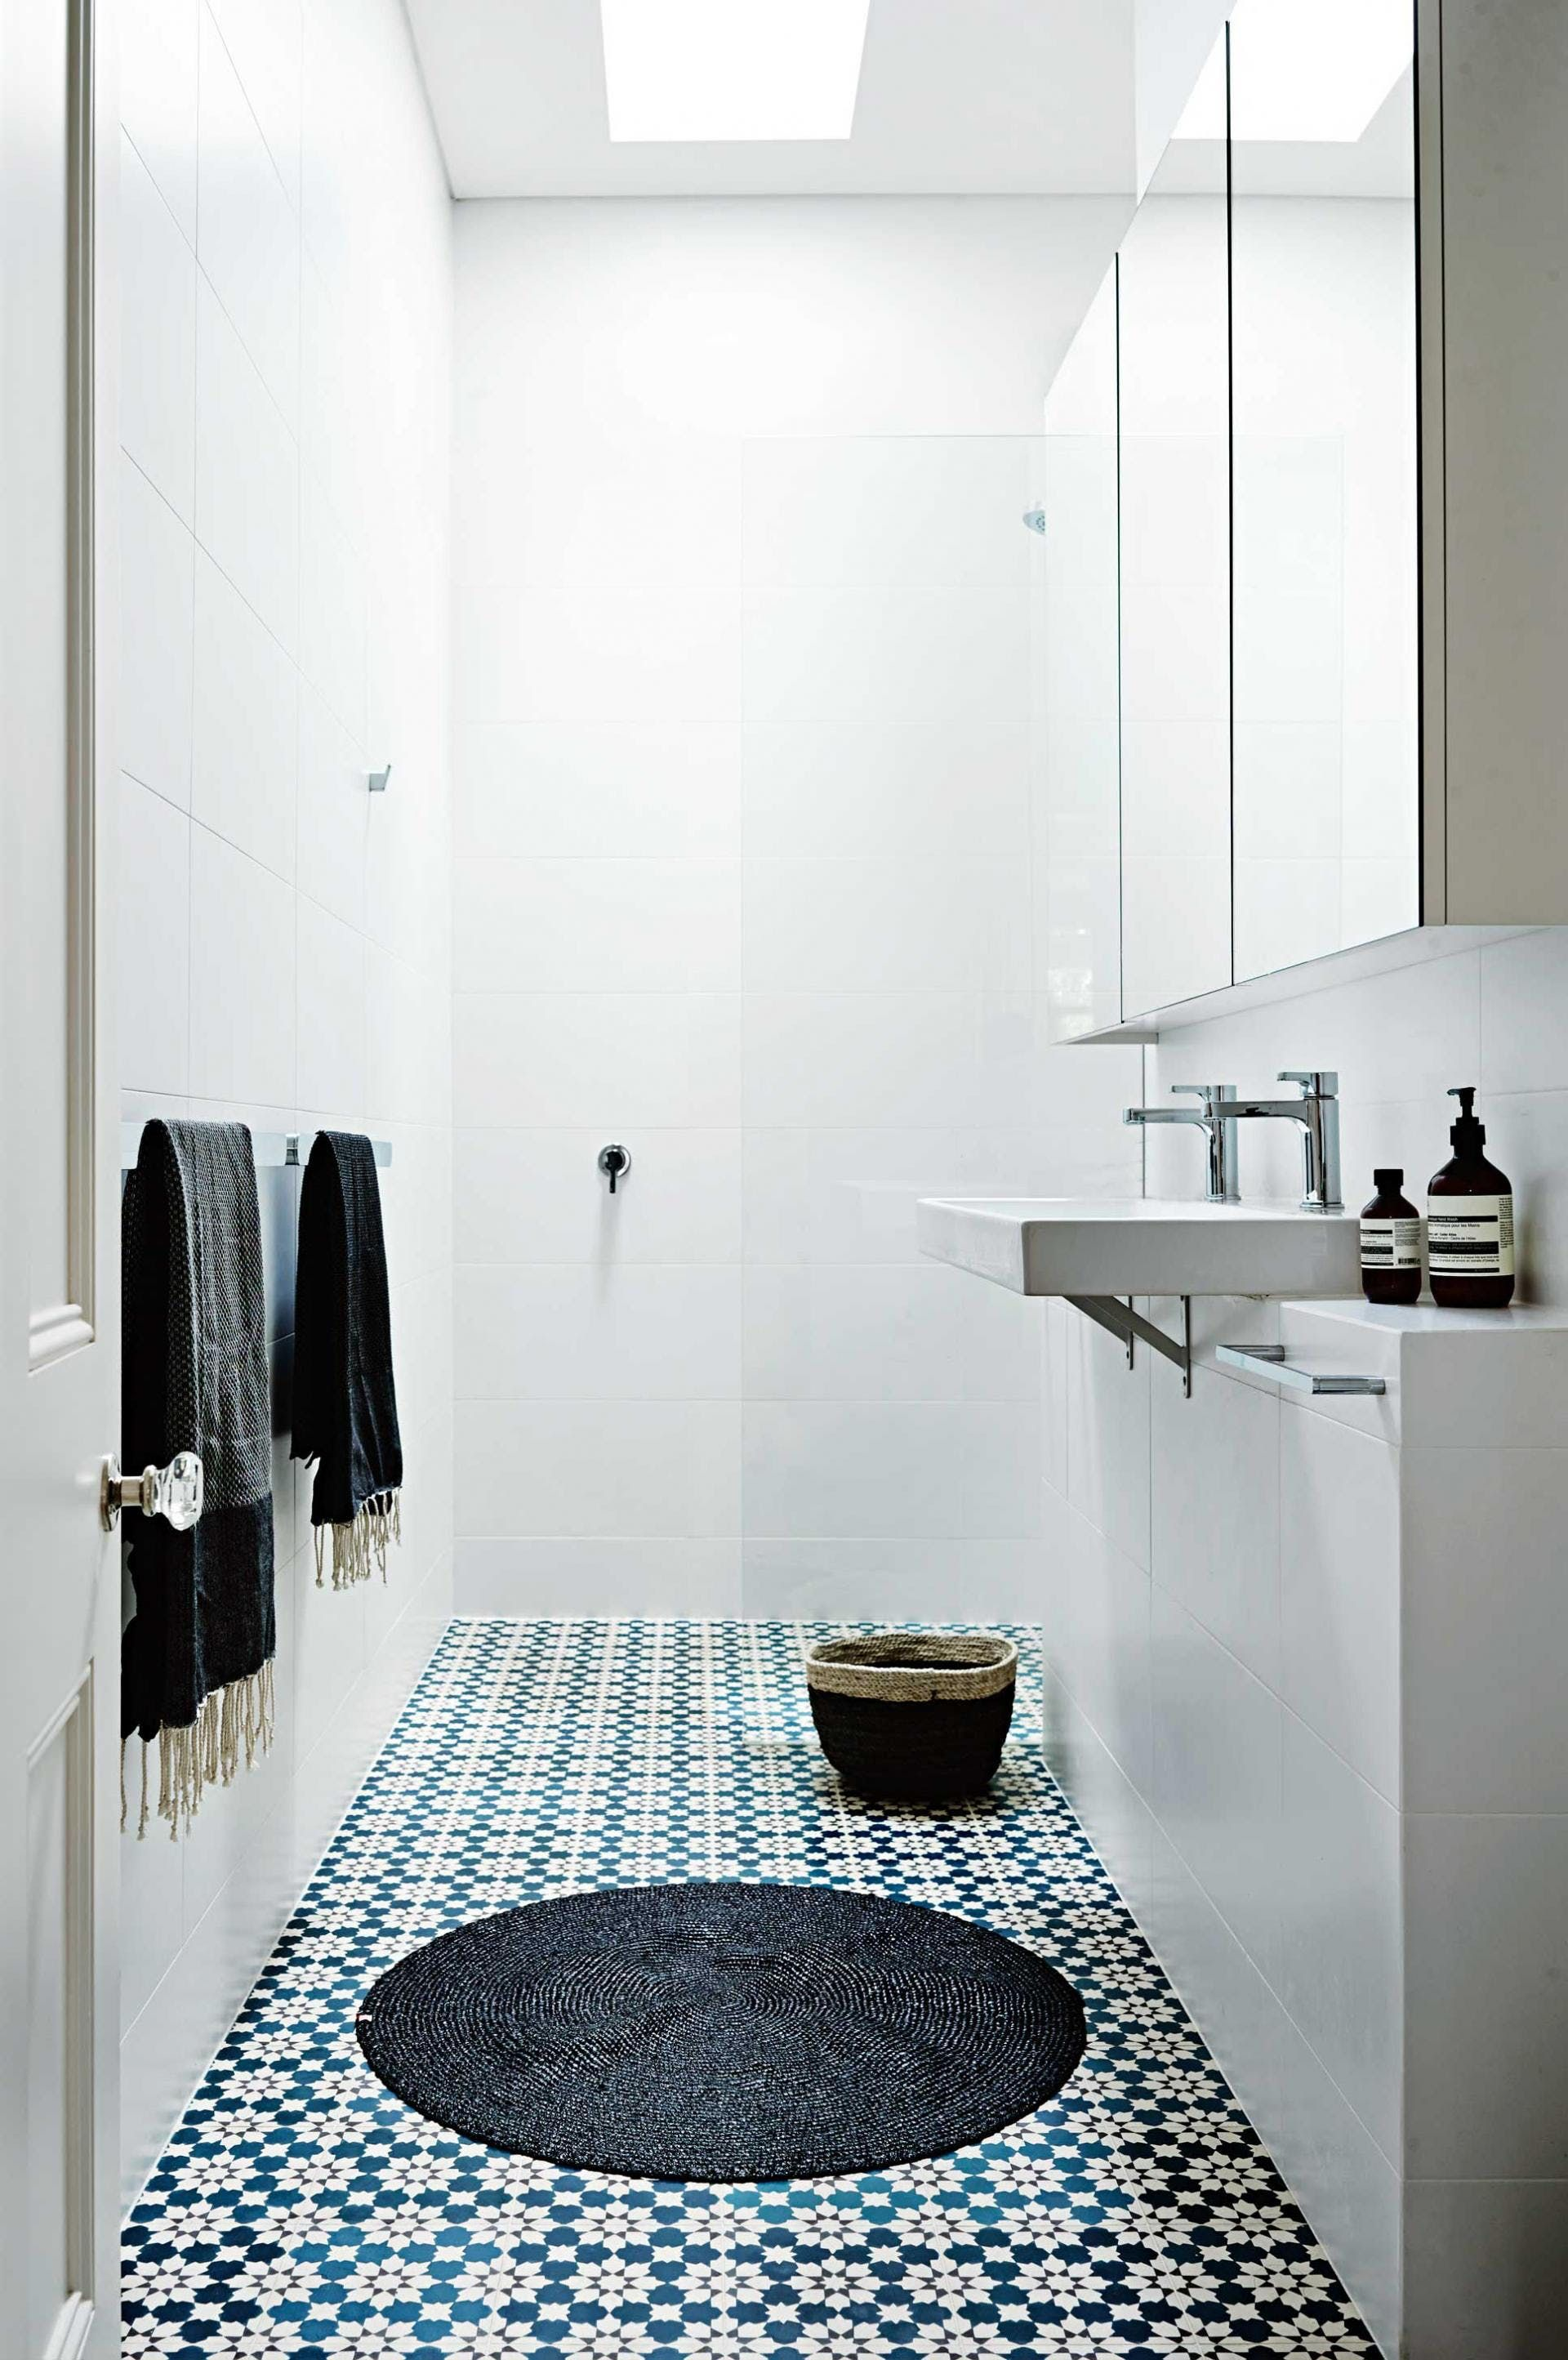 Stylish Remodeling Ideas for Small Bathrooms | Small bathroom, Attic ...